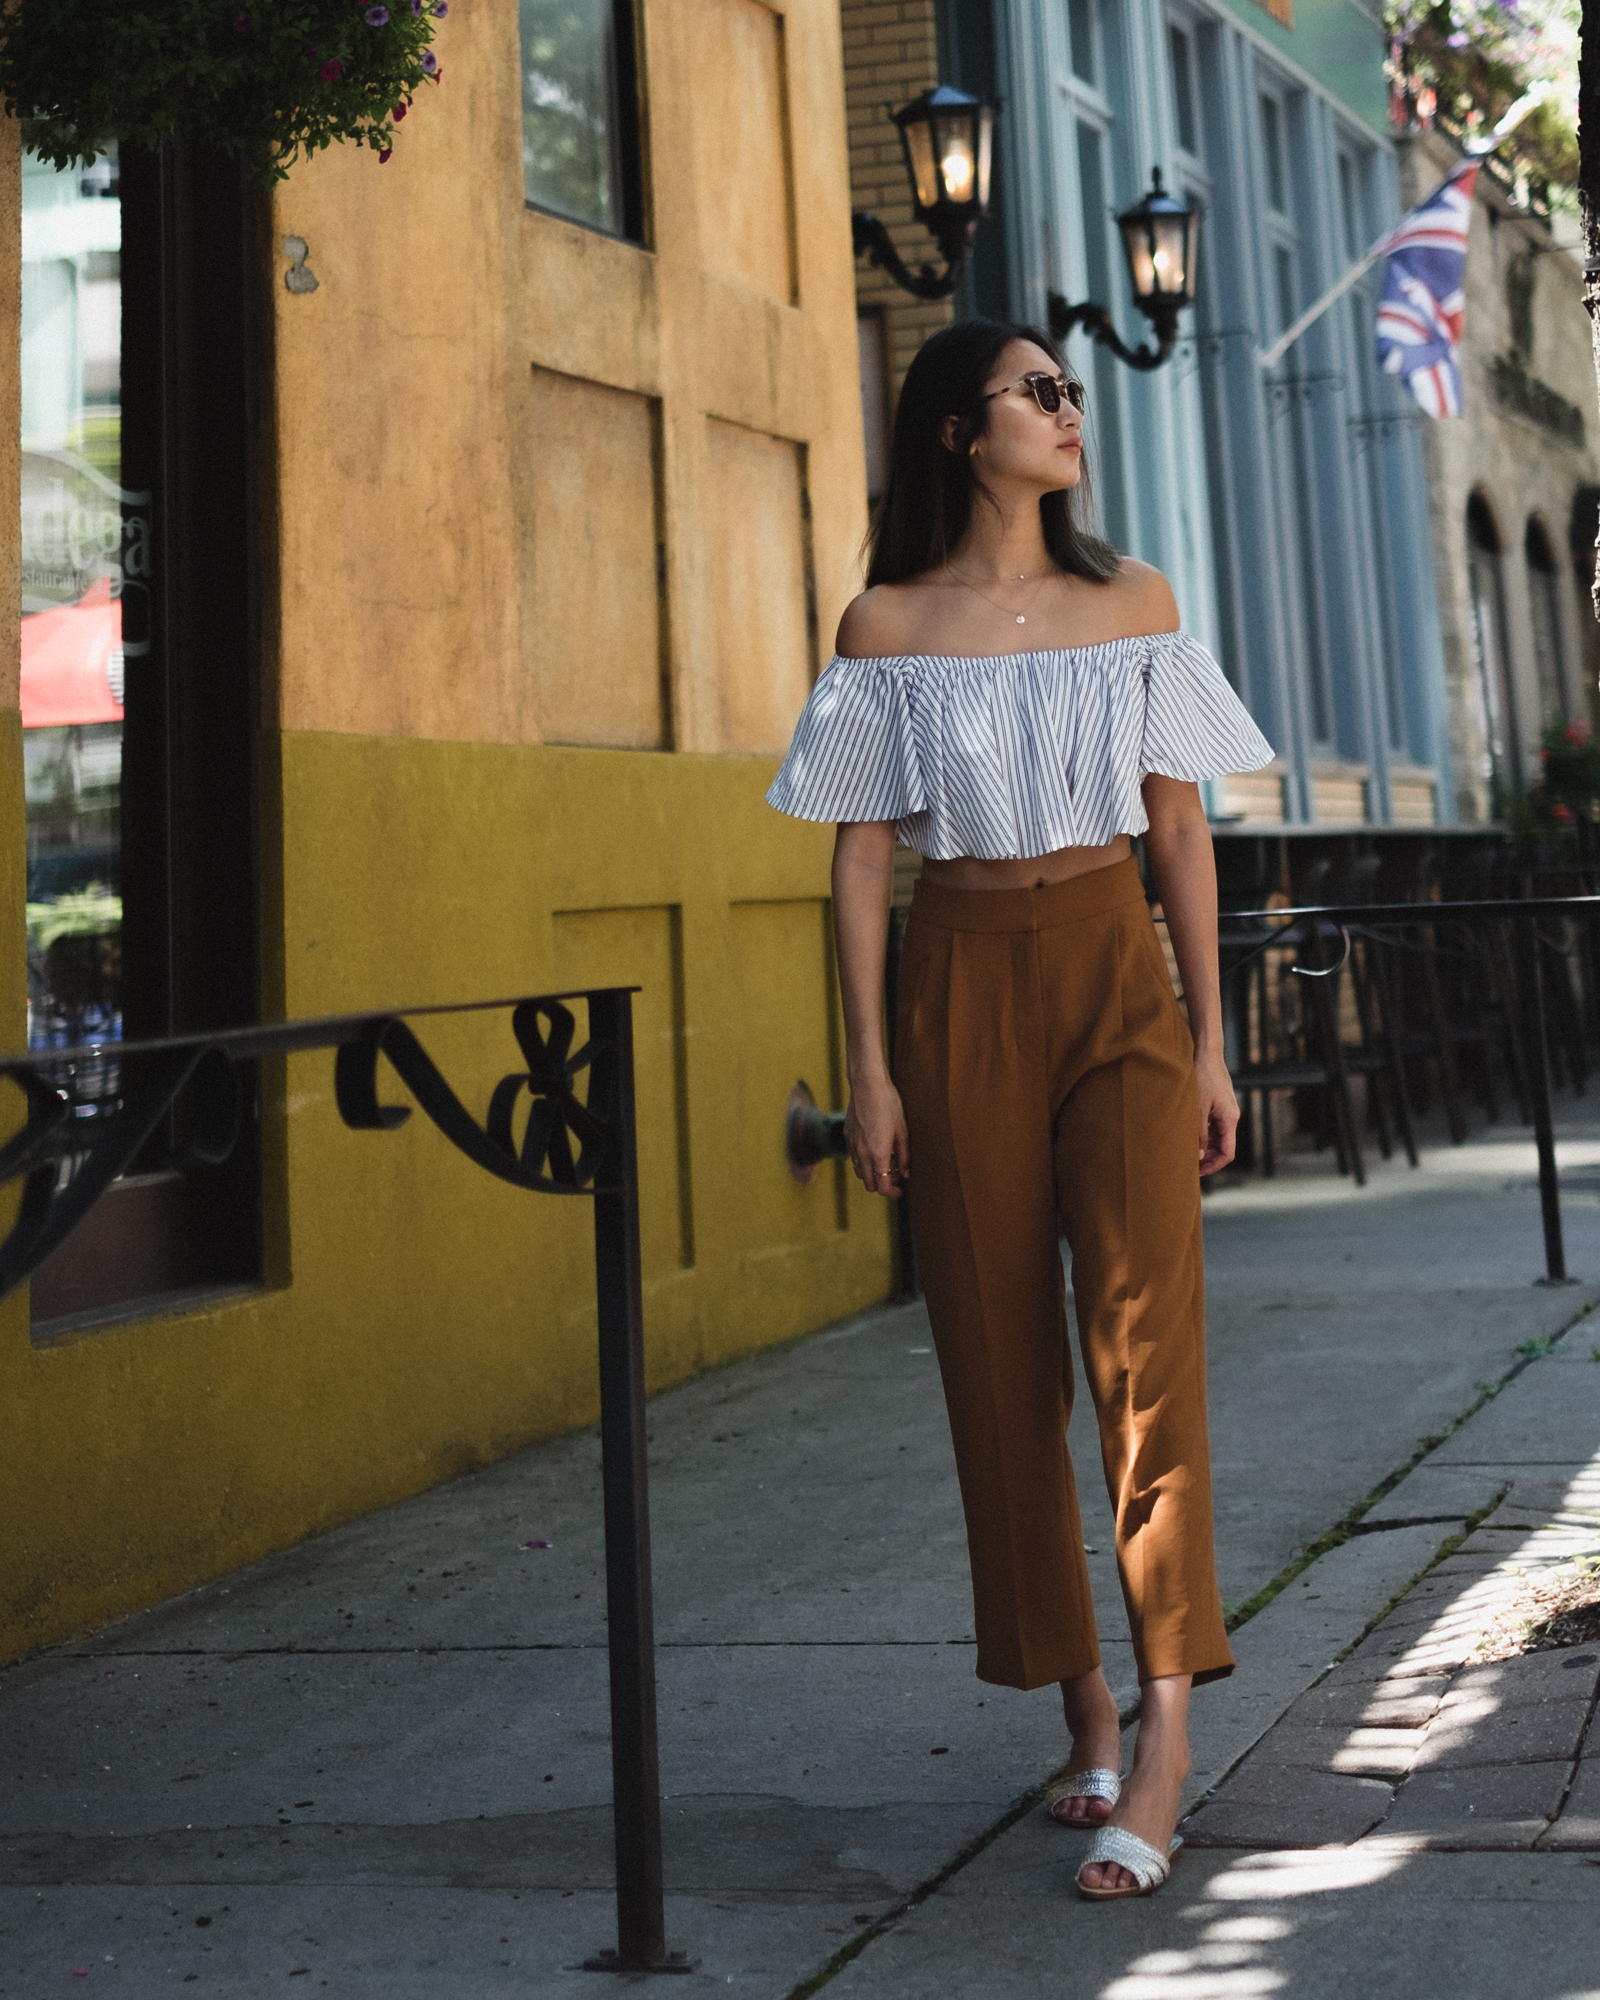 Top from  The Siista'r (similar  here and  here ), Pants from  Aritzia , Sandals from Zara (sold out - similar  here ), Jewelry from  Mejuri (use 'TINA' for $20 off)